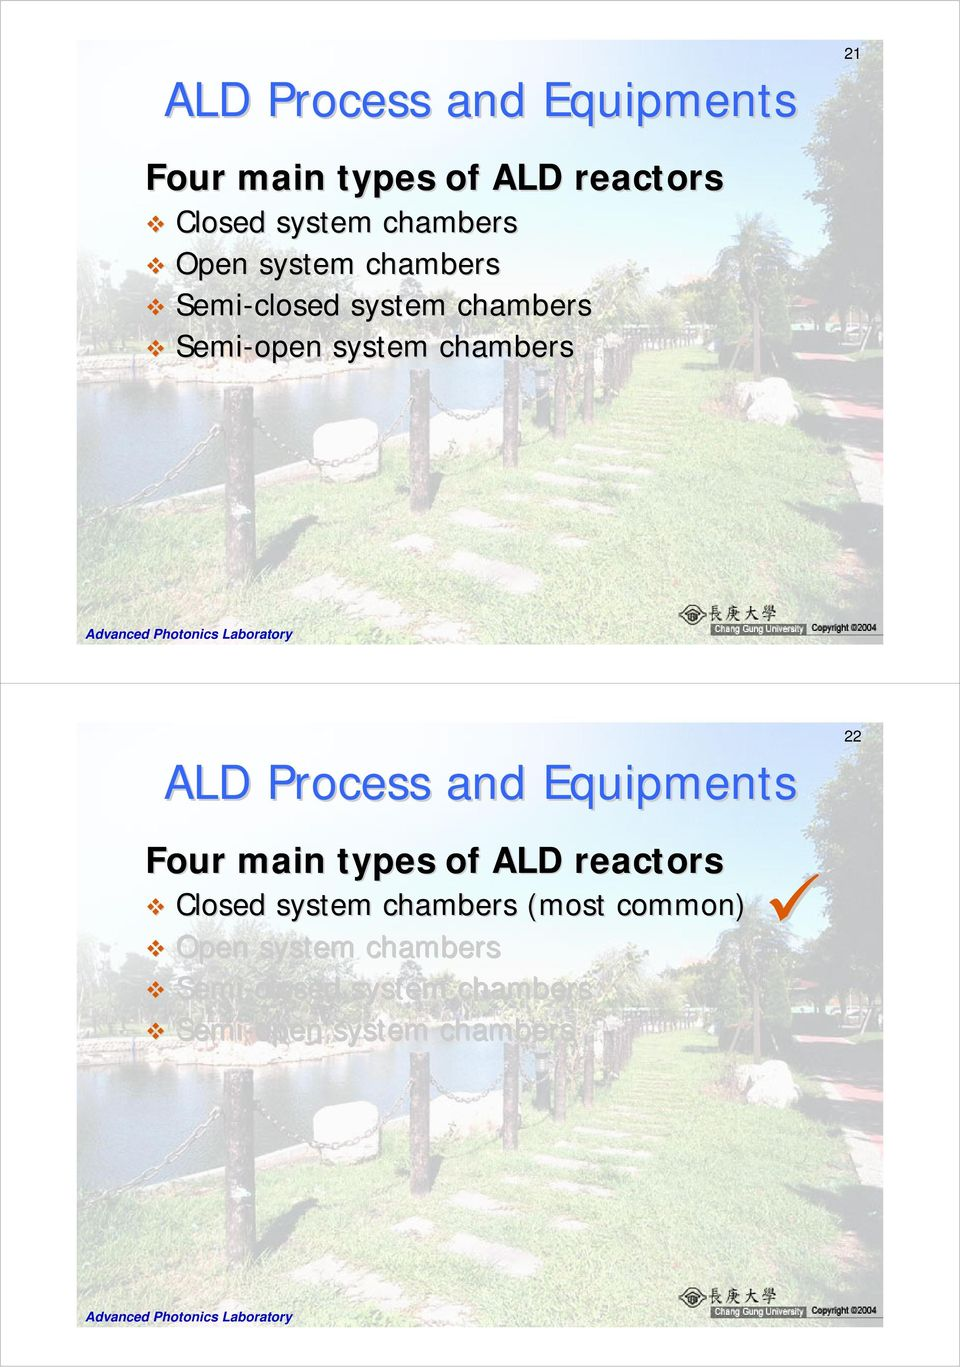 Four main types of ALD reactors Closed system chambers (most common)